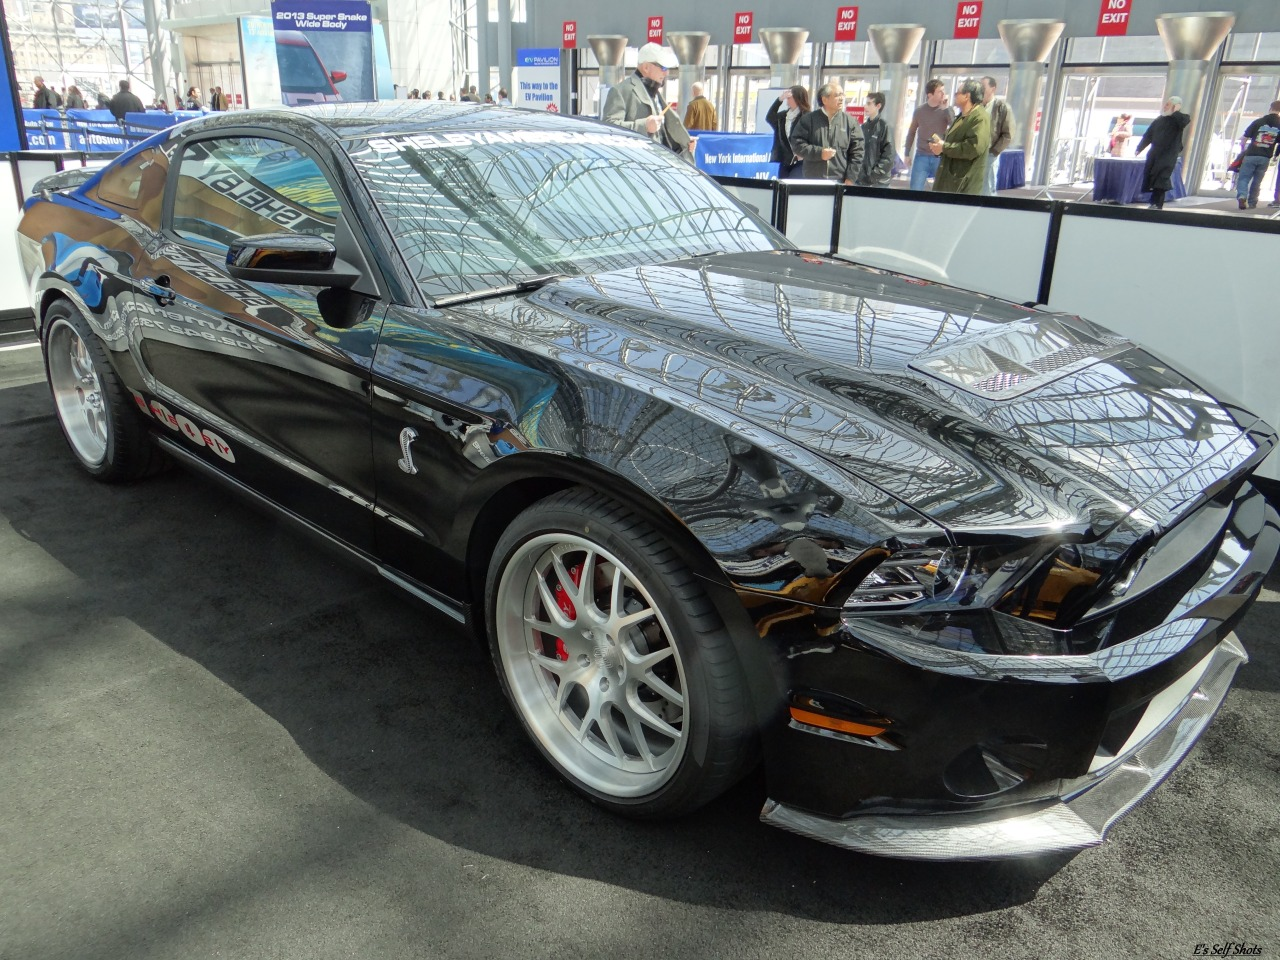 fuckyeahfordmustangs:  just cause i saw that u posted a gt500. so i'll up you 500 with the all new gt1000 that had it's power boosted up to 1200hp this year. enjoy.